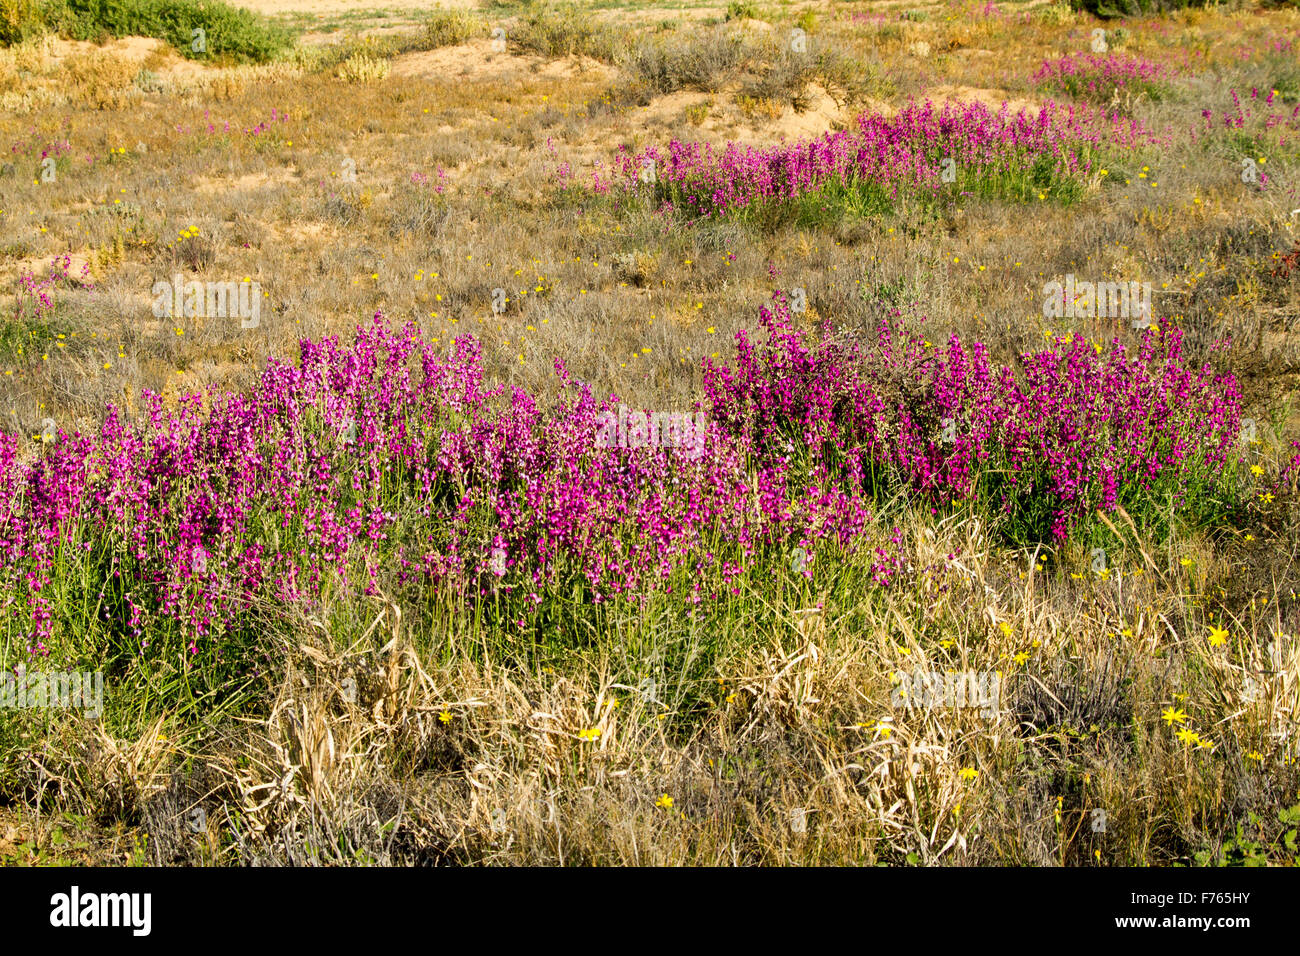 Swathes of vivid magenta / purple flowers & green leaves of Swainsona campylantha, wildflowers growing in outback Stock Photo